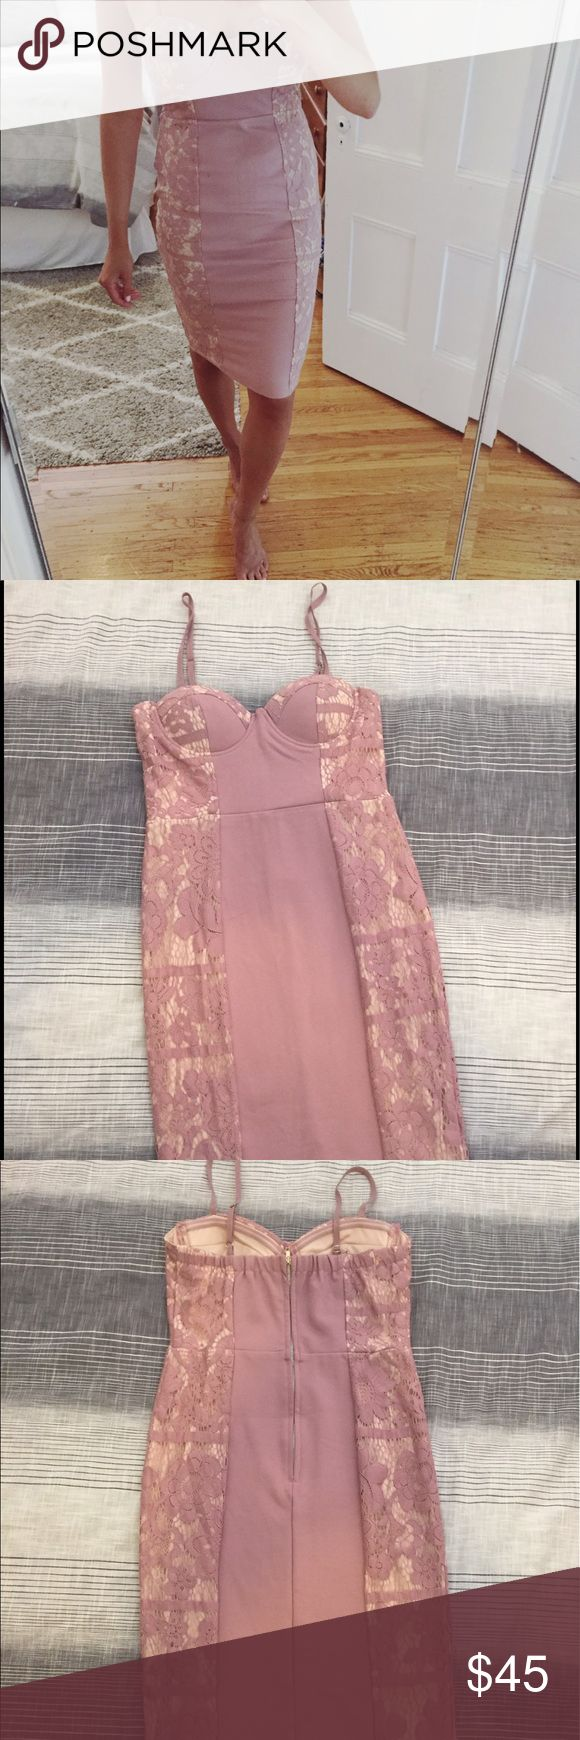 Mauve Bodycon Dress - Never worn! Bodycon midi dress for sale - amazing for weddings or any sort of cocktail party! Pretty dusty pink/mauve shade with nude lace underlay on sides. Thin adjustable straps. Bra inserts. Cup size was too small for me - never worn and no flaws! Angel Biba Dresses Midi